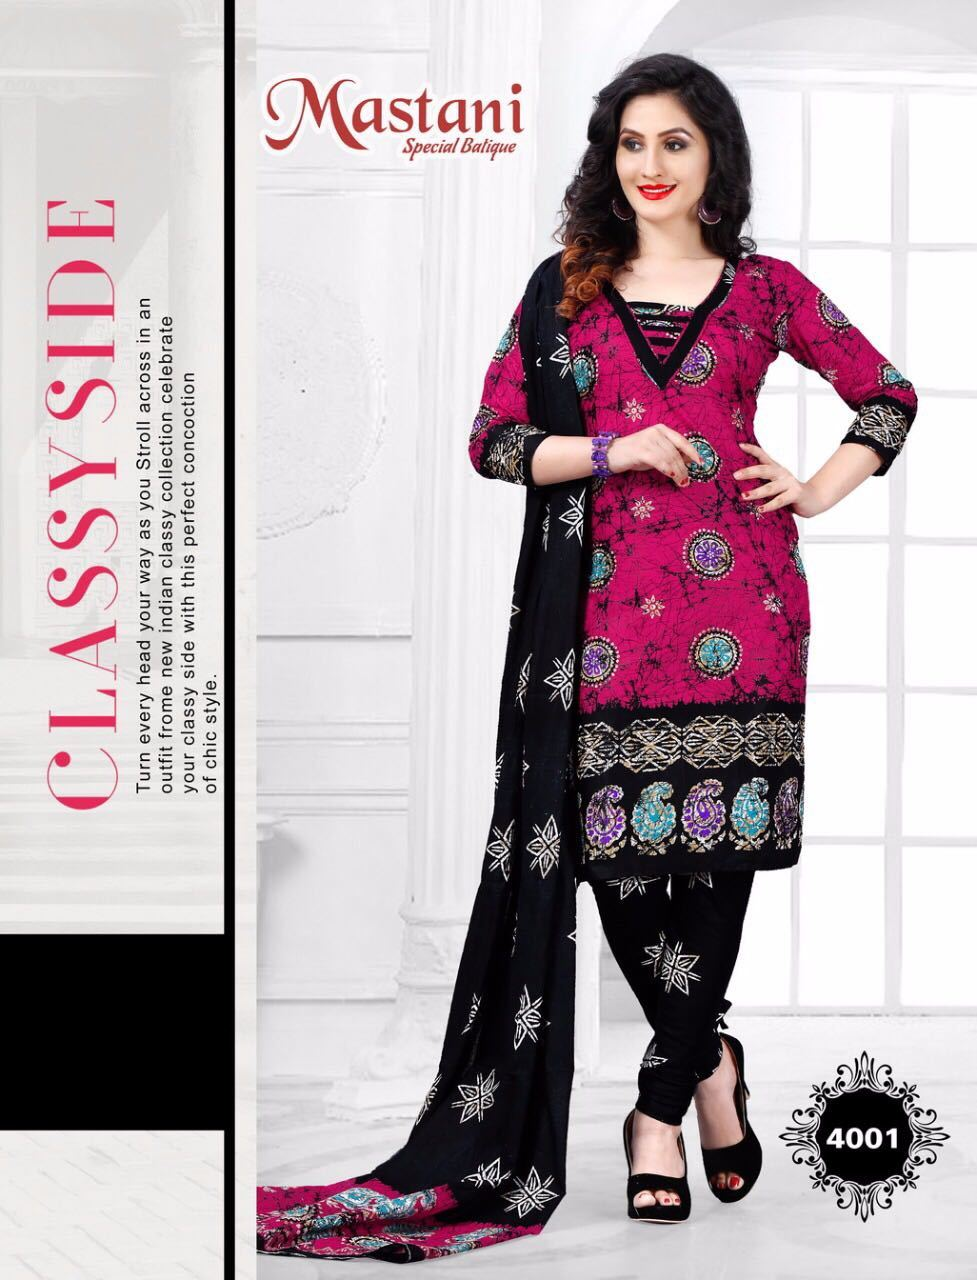 79e3162bad COTTON PRINTED DRESS MATERIALS MASTANI SPECIAL BATIQUE VOL-4 BY MASTI